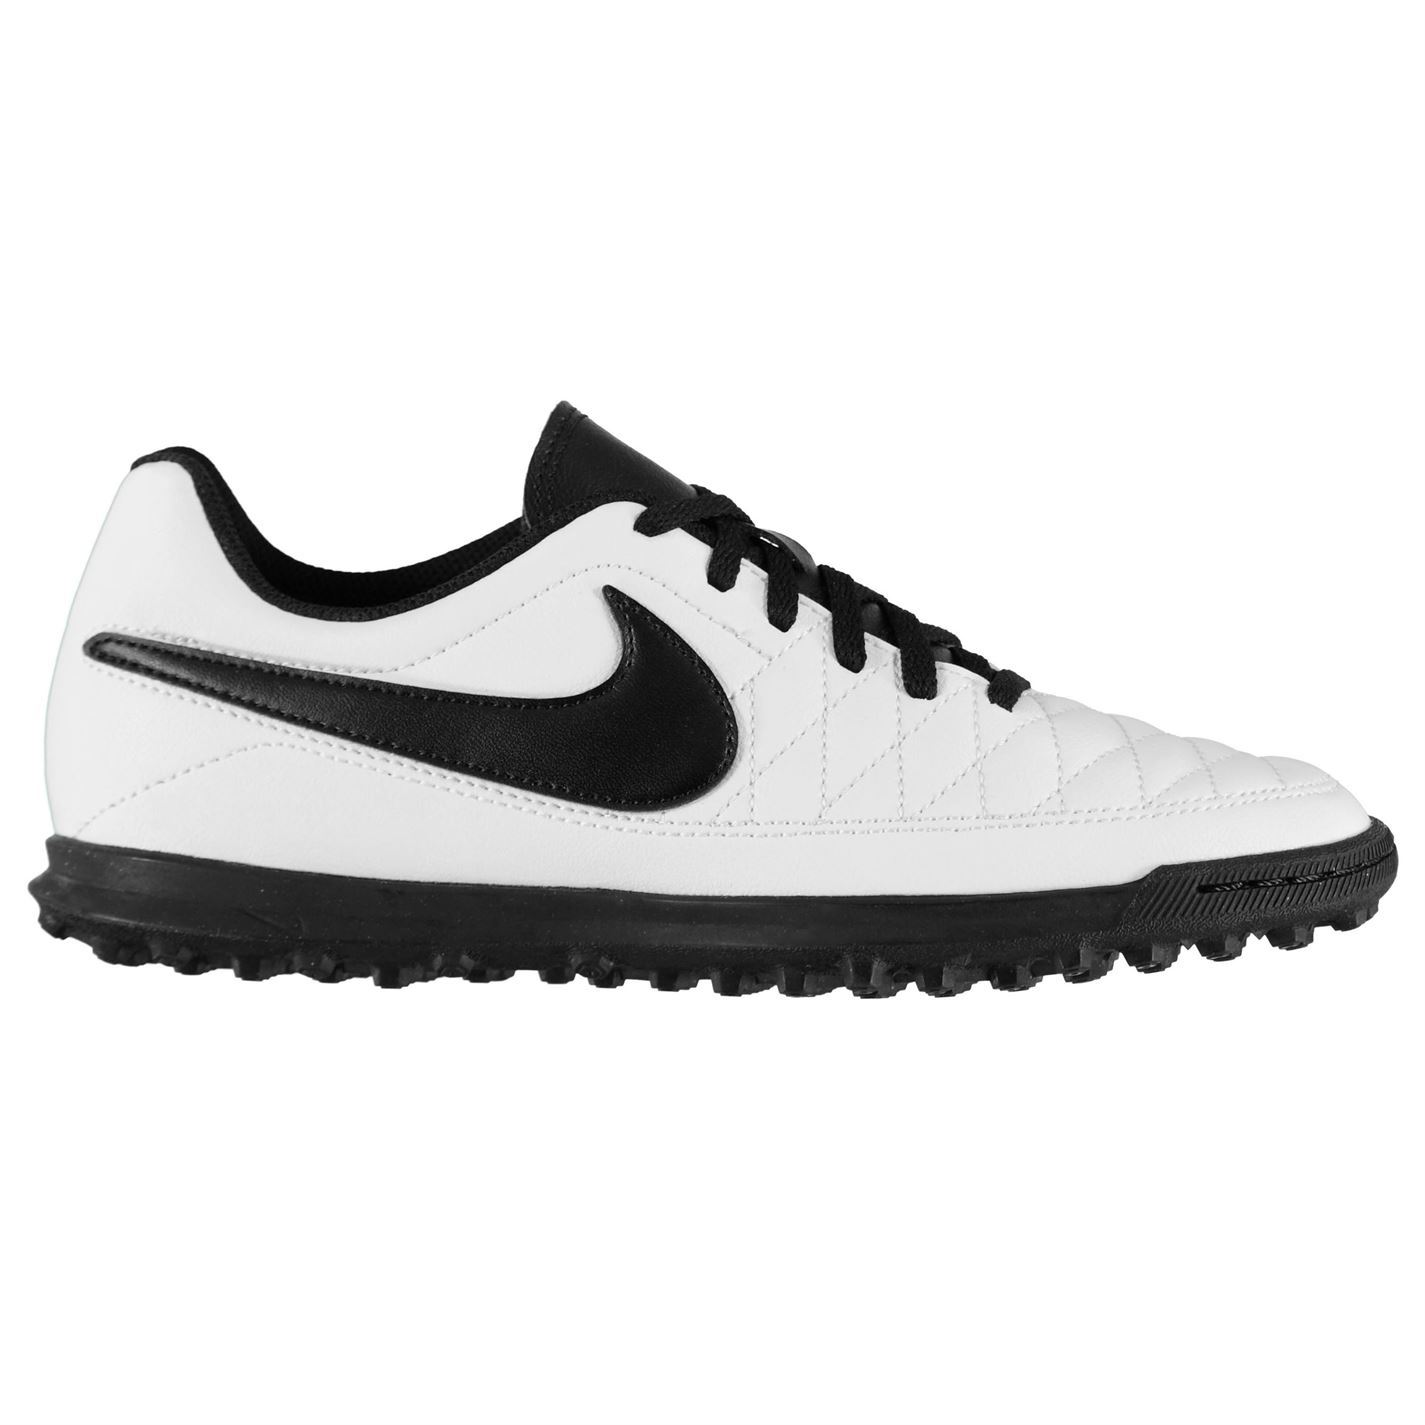 Nike-majestry-Astro-Turf-Football-Baskets-Pour-Homme-Football-Baskets-Chaussures miniature 7